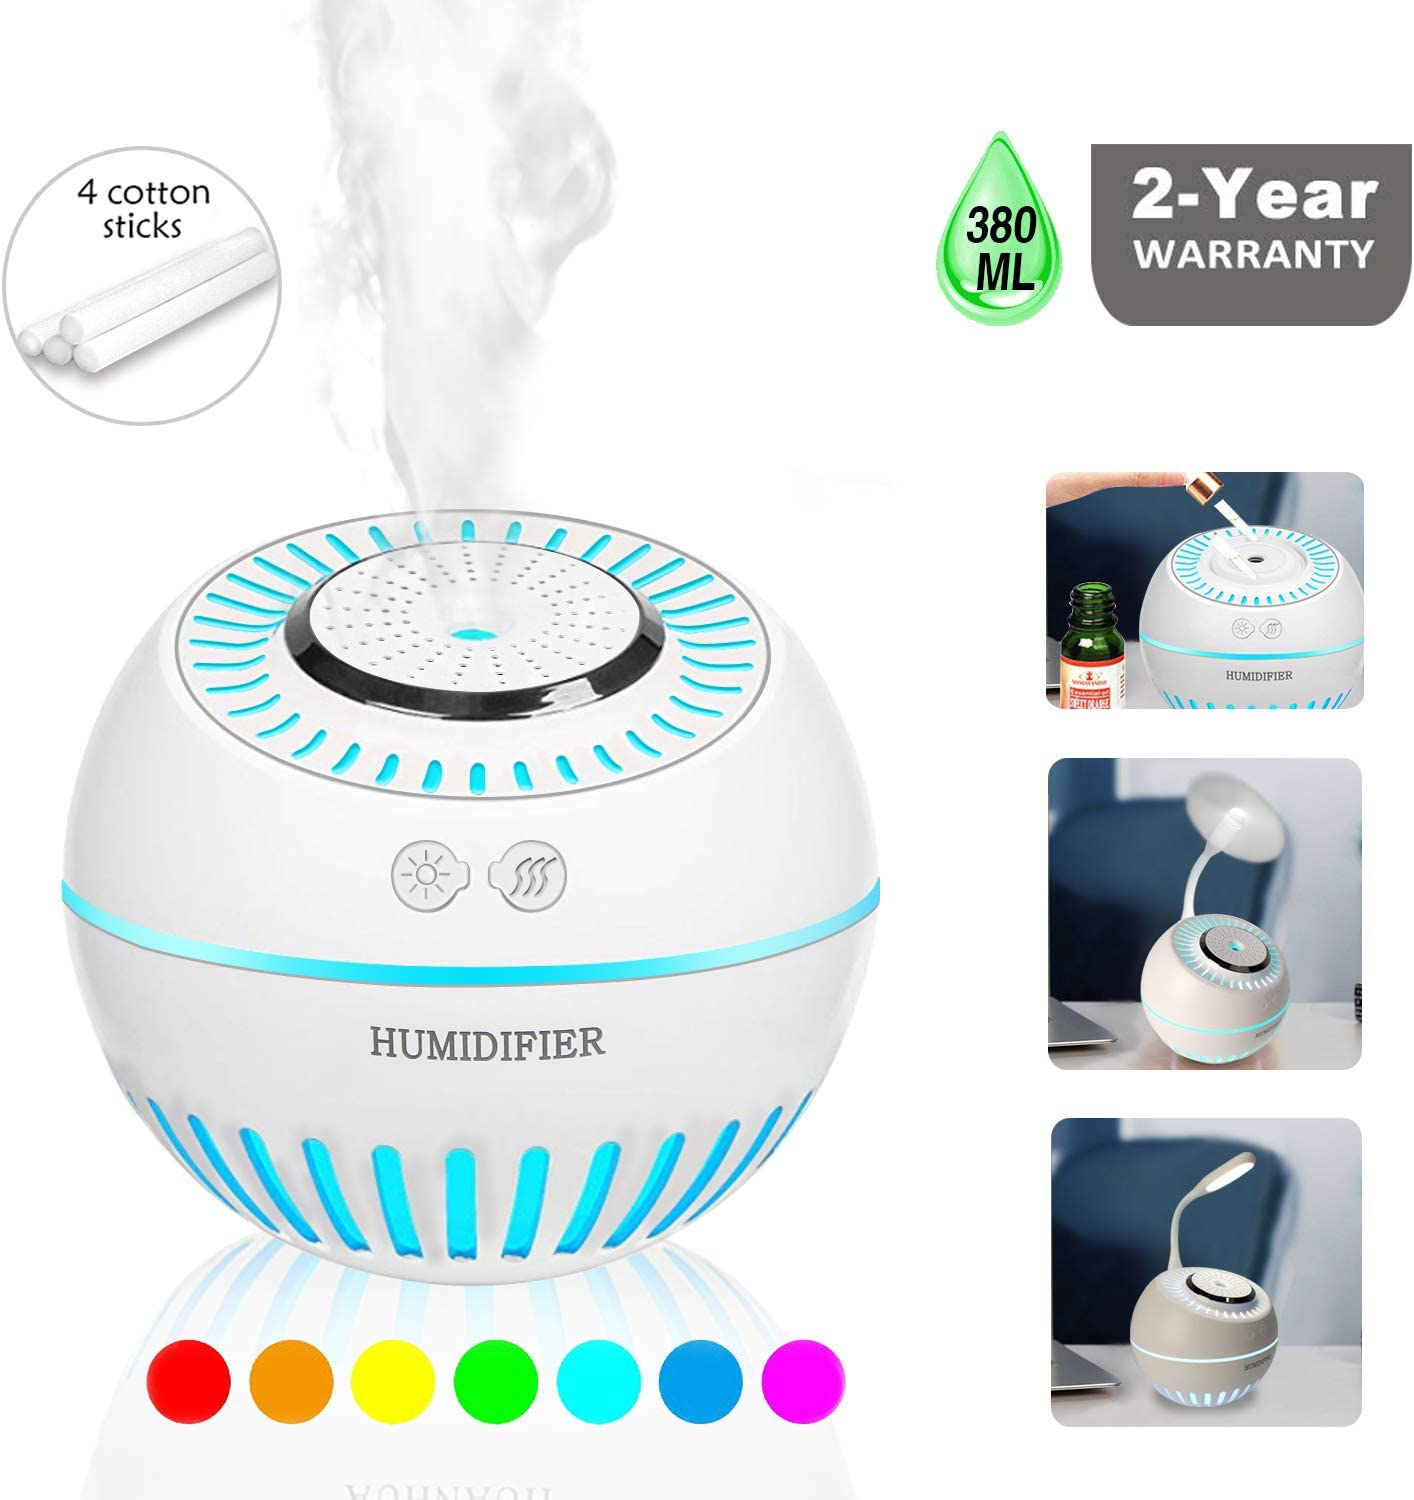 DCMEKA Cool Mist Baby Humidifier, Newest Updated Version 2-in-1 Humidifier Diffuser Ultrasonic USB Desk Humidifier for Home Bedroom Baby Nursery and Office, 4 Cotton Sticks Included 380ml 50ml h